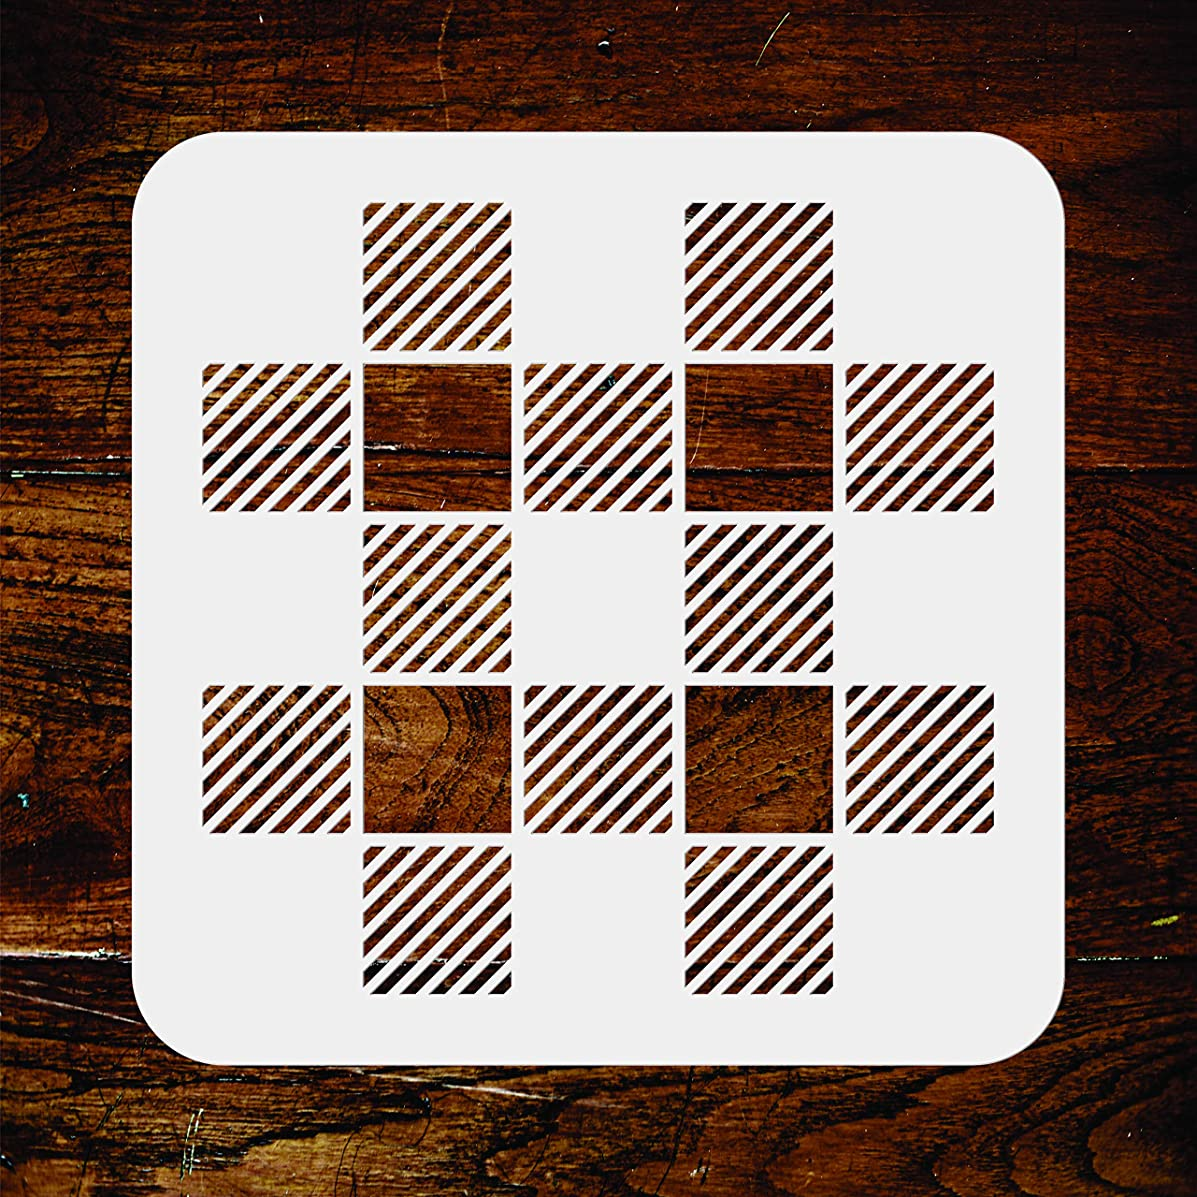 Buffalo Plaid Stencil - 10 x 10 inch -Reusable Folkart Check Pattern Allover Wall Stencils Template - Use on Paper Projects Scrapbook Journal Walls Floors Fabric Furniture Glass Wood etc.